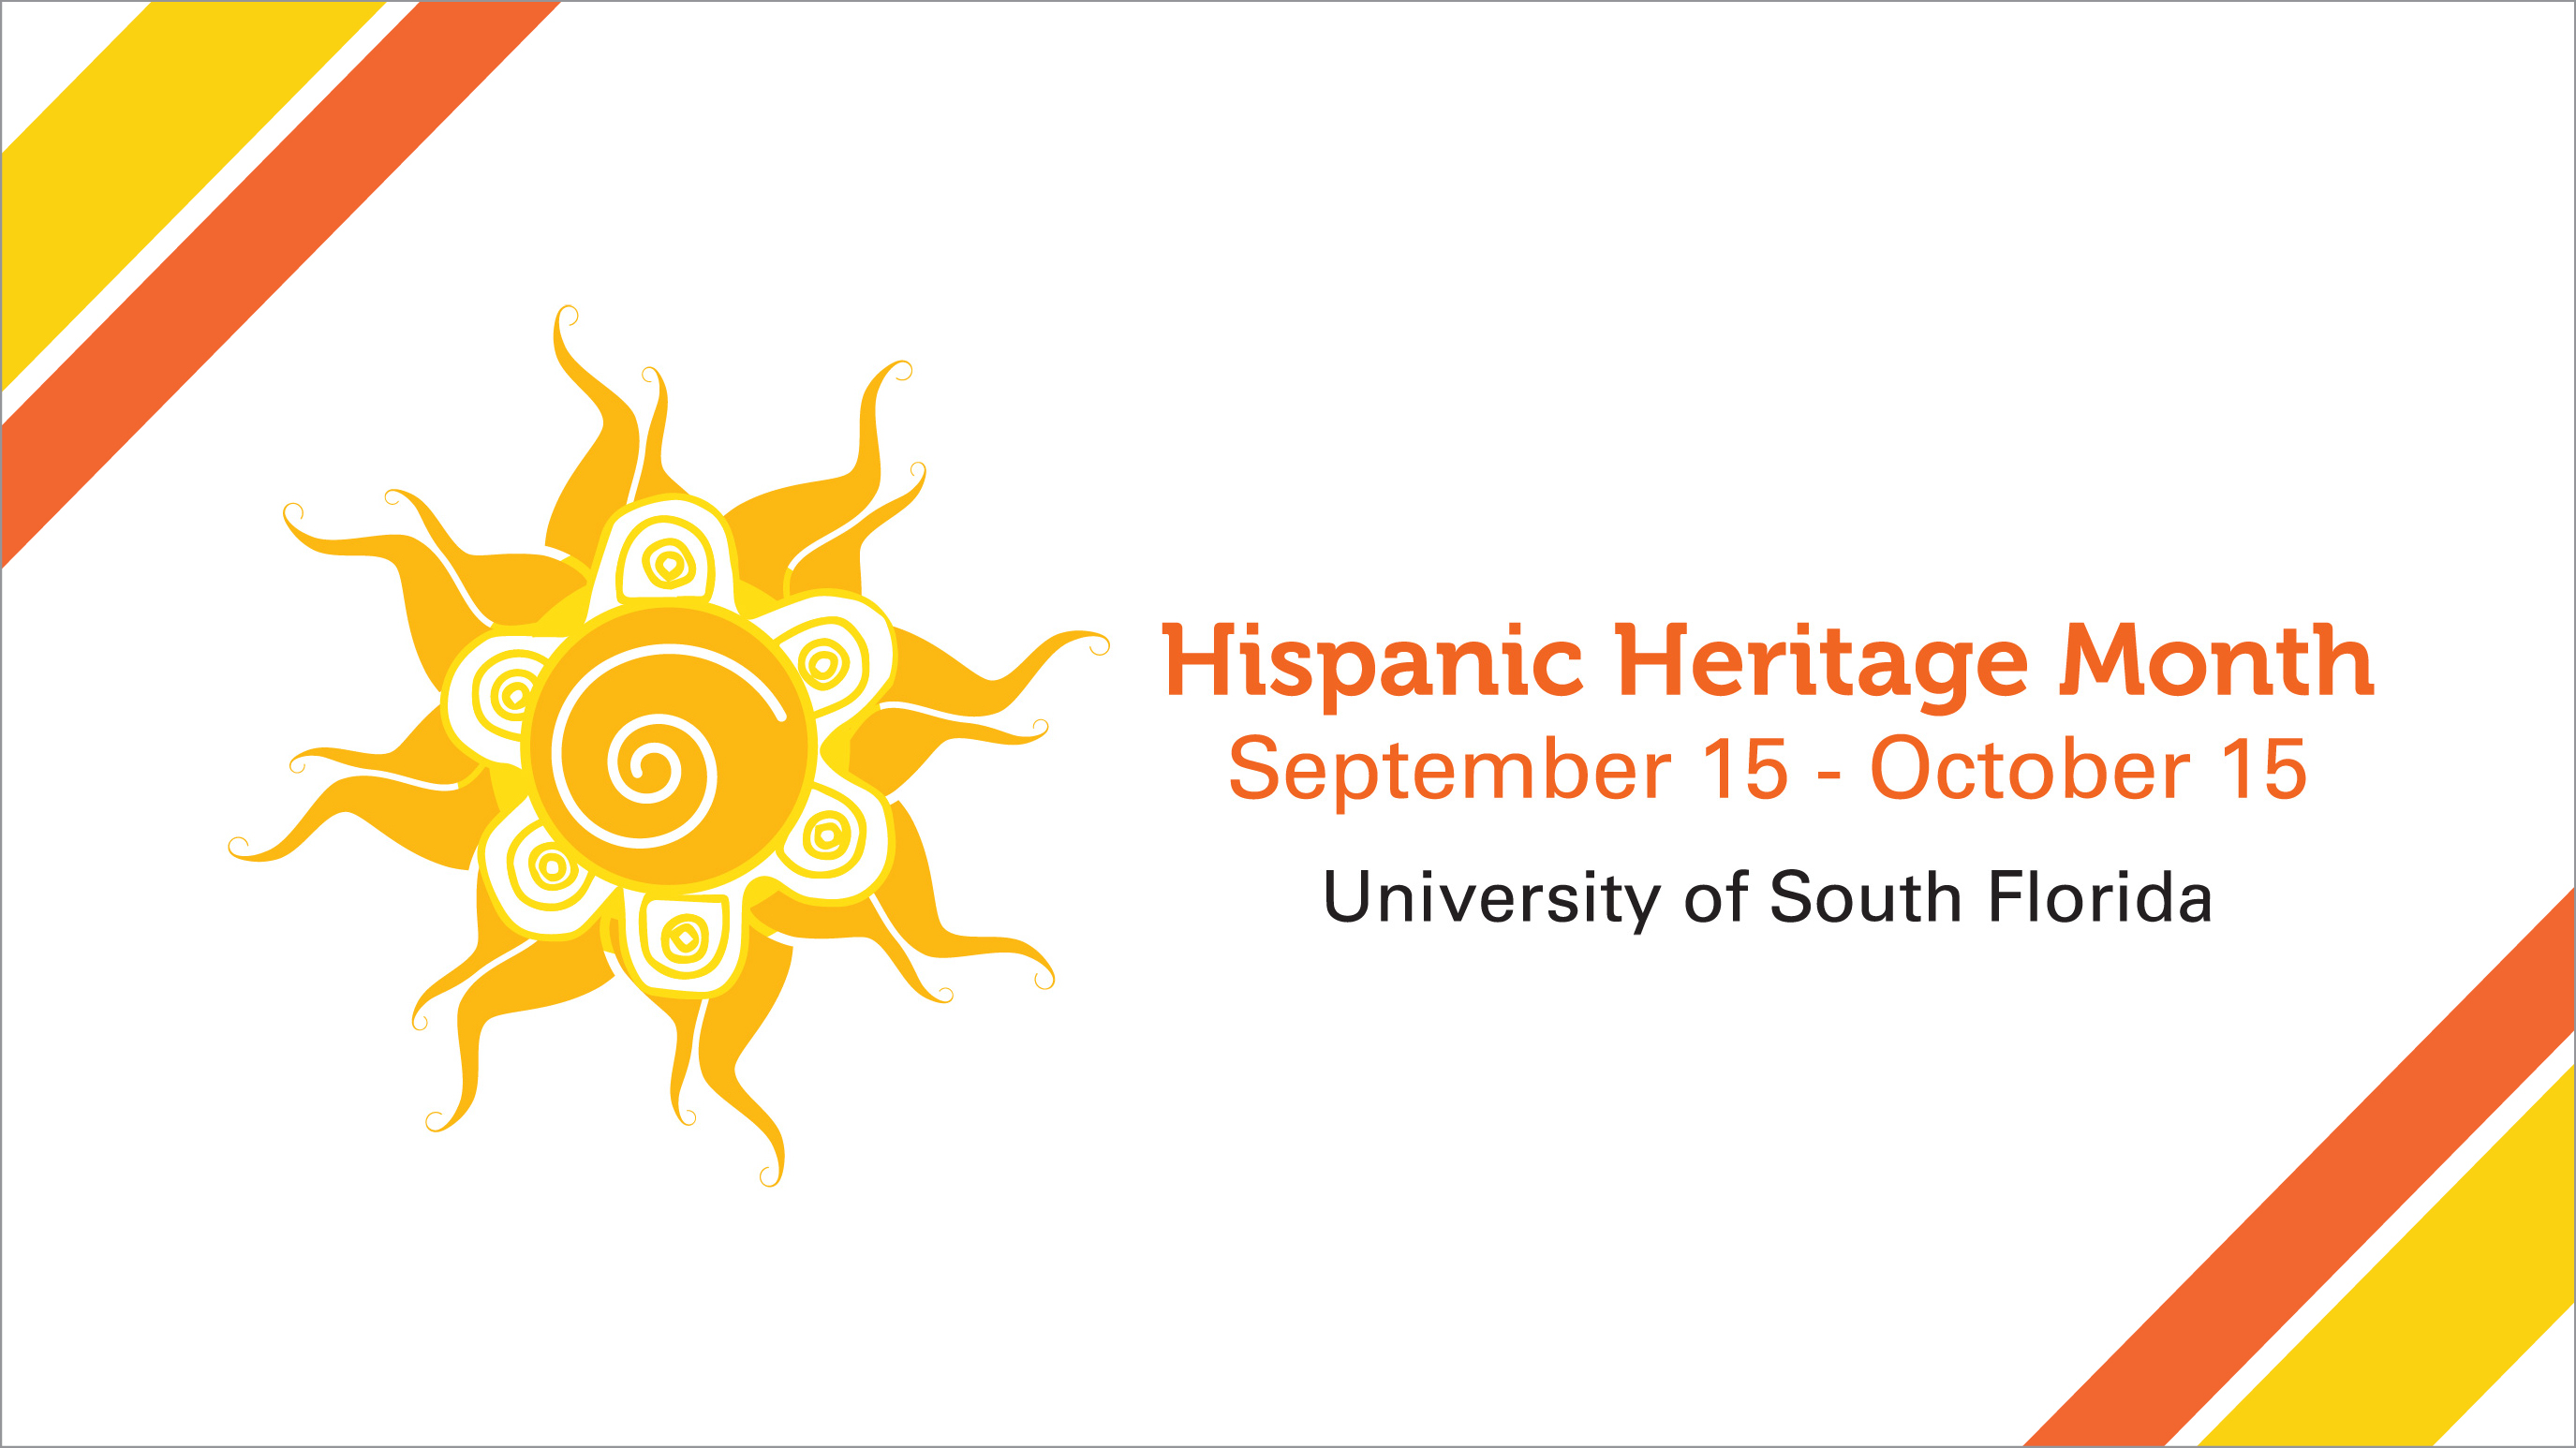 Get Connected to 2018 Hispanic Heritage Month